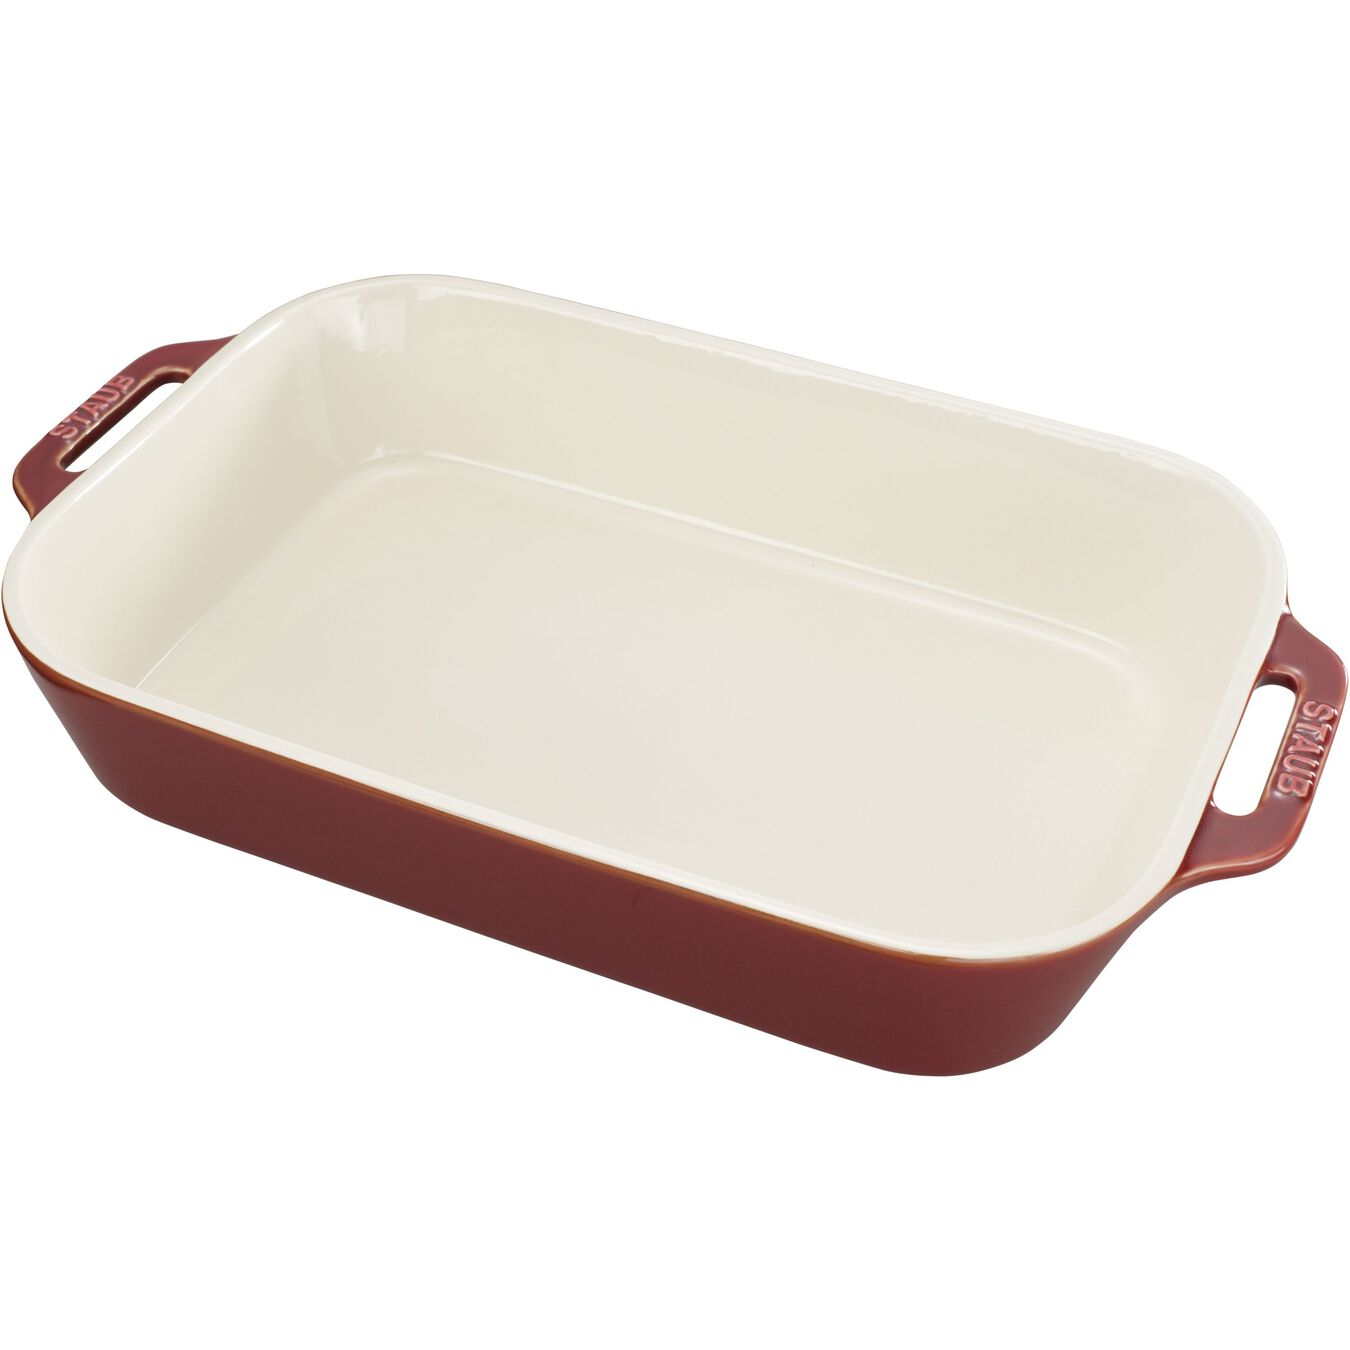 9-x 13-inch, rectangular, Oven dish, rustic red,,large 1